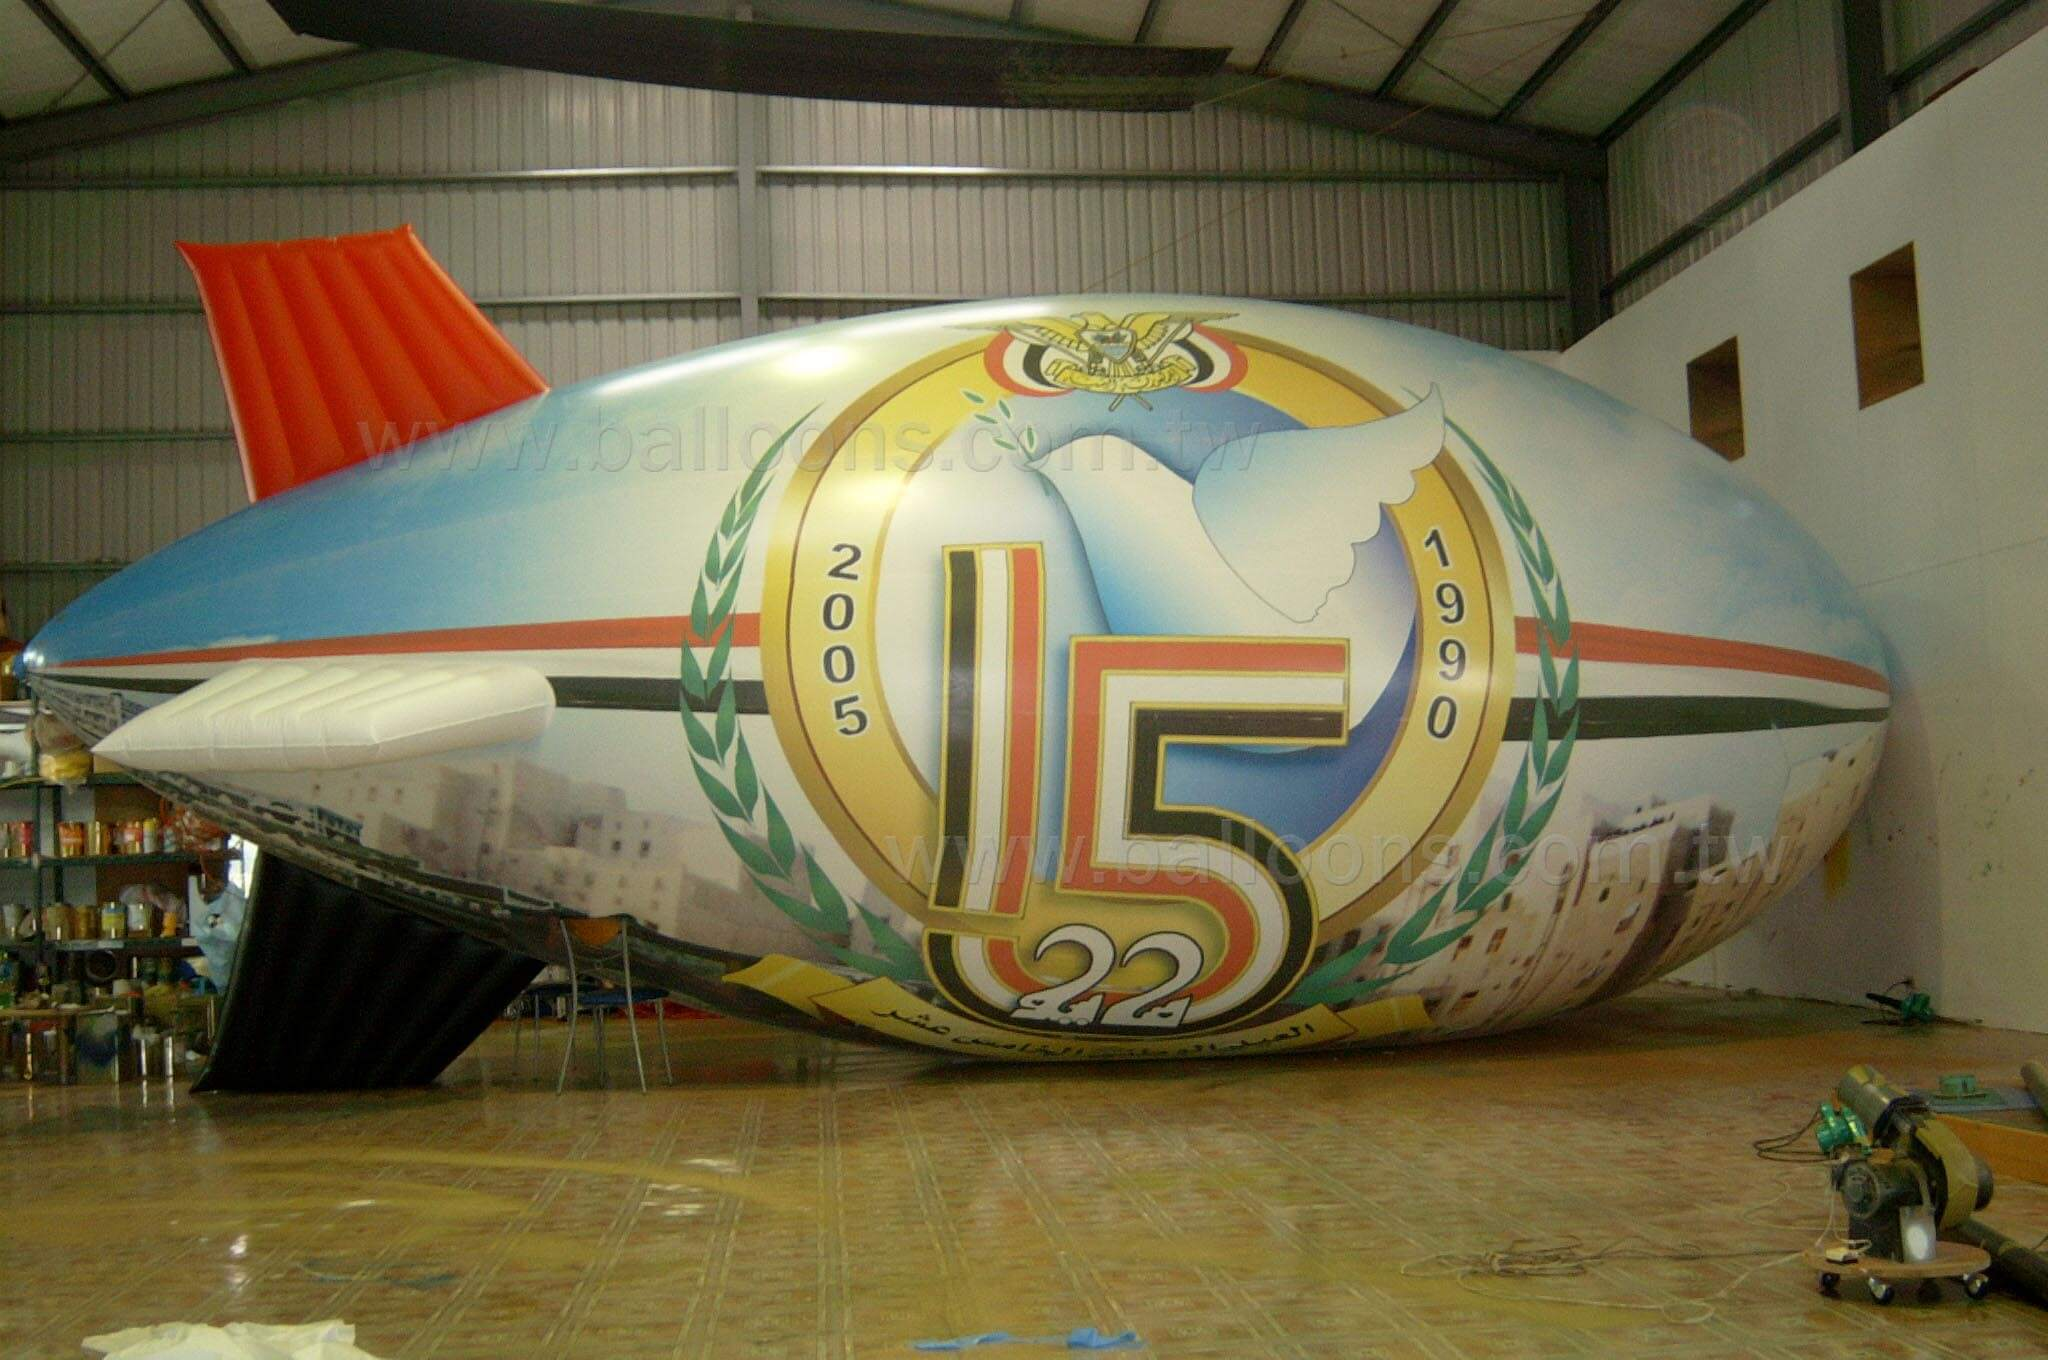 30ft long advertising printed inflatable fins blimp全色電噴軟翅飛船